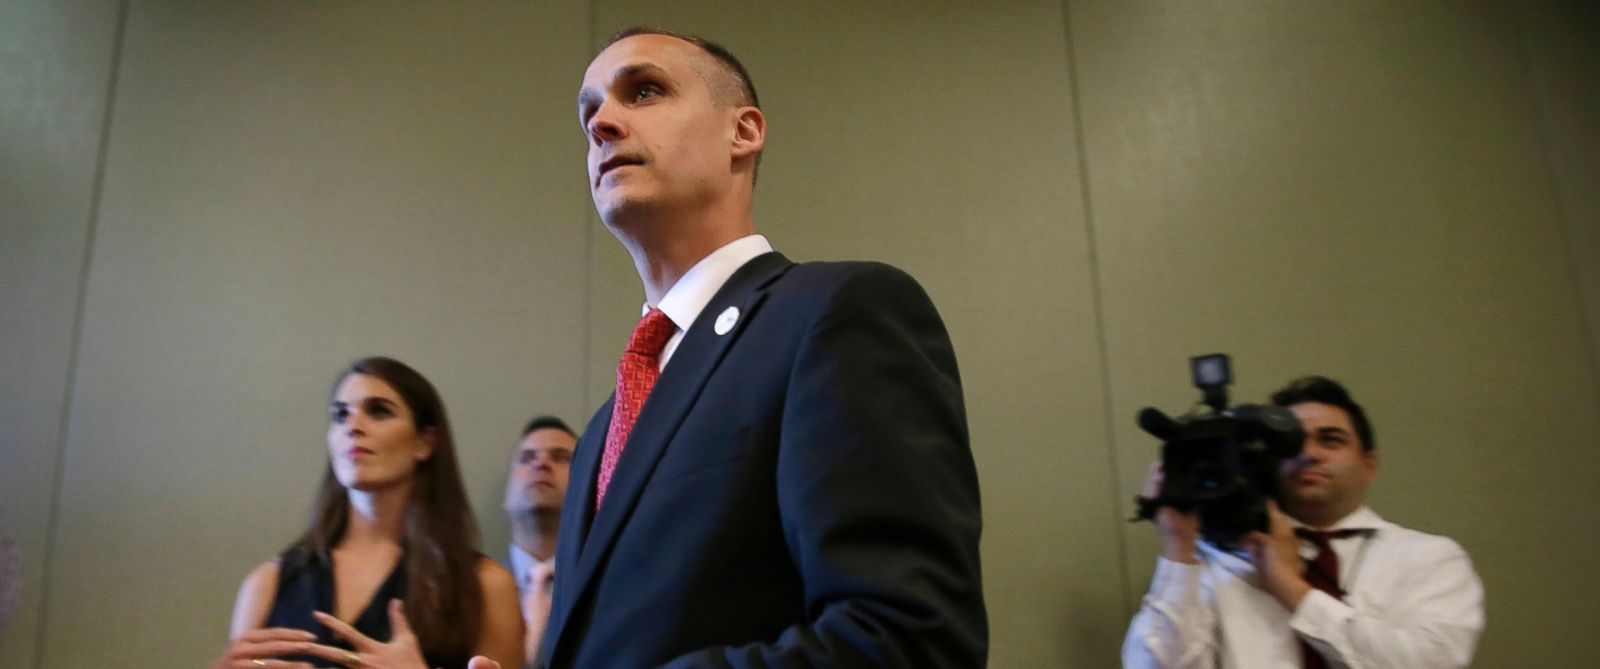 PHOTO: Campaign manager Corey Lewandowski, center, looks on as Republican presidential candidate Donald Trump speaks at a news conference on Aug. 25, 2015, in Dubuque, Iowa.